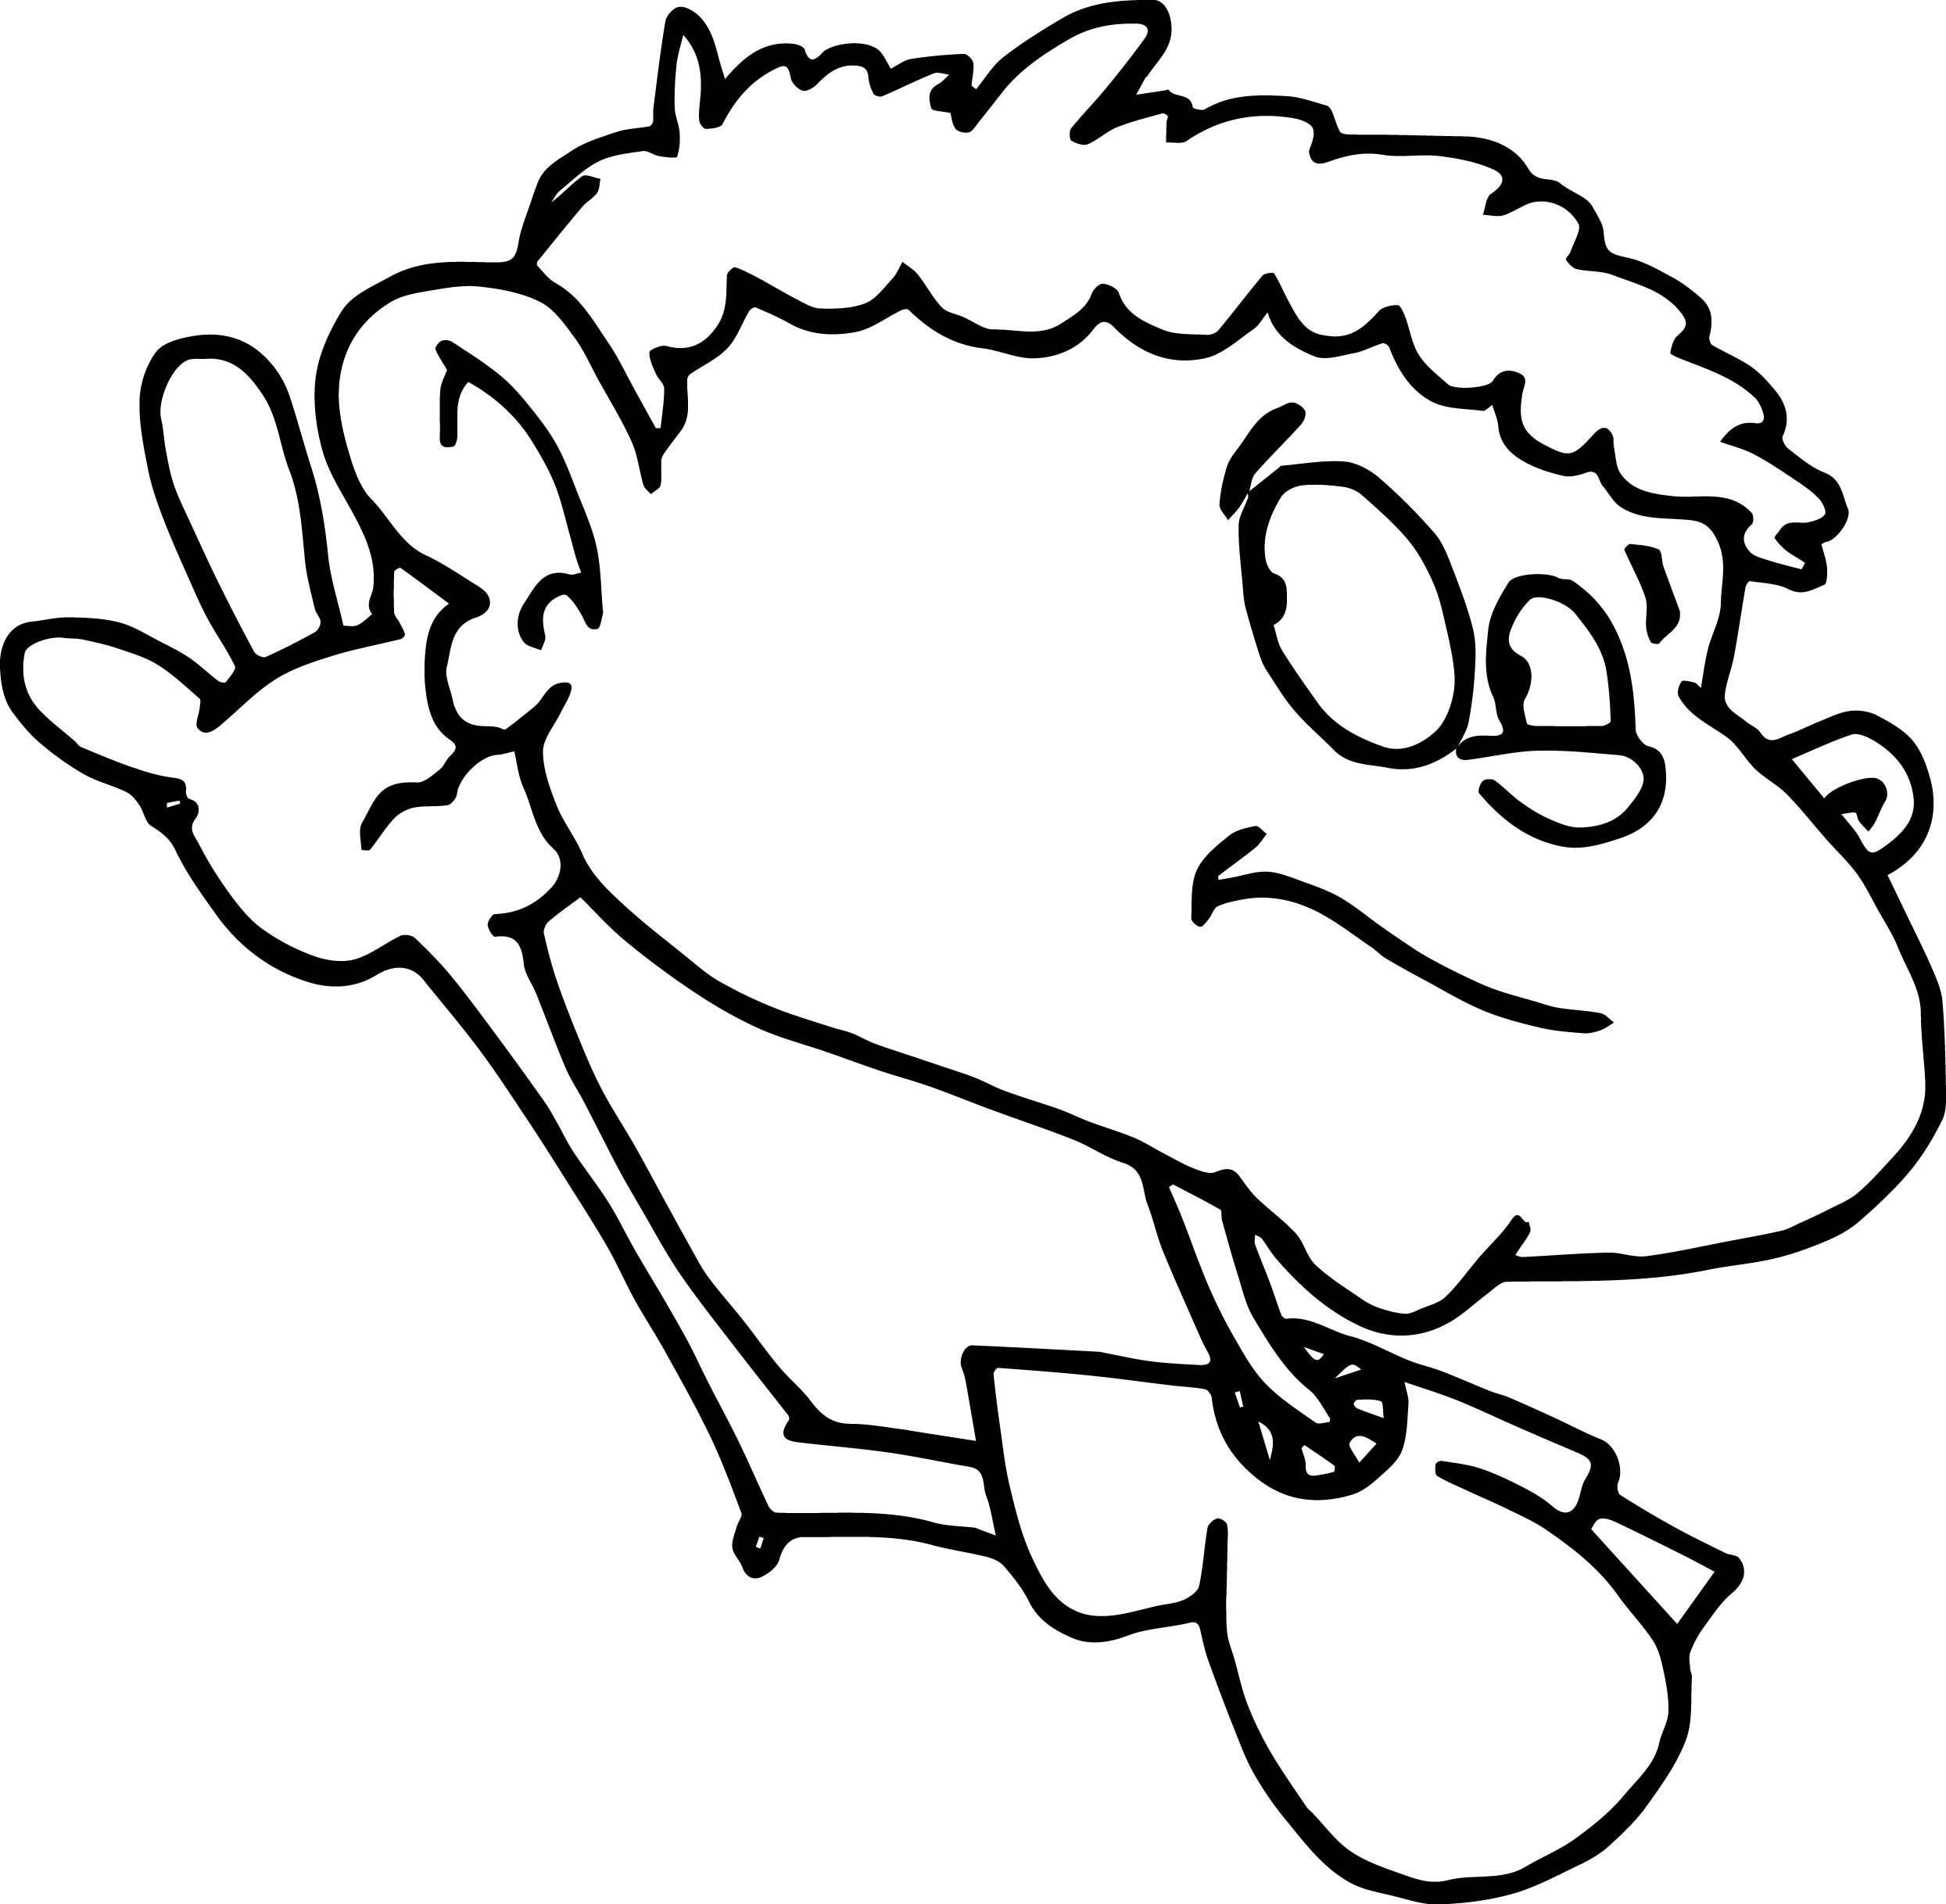 Awesome Child Ear Sense Coloring Page Coloring Pages Coloring Pages For Kids Online Coloring Pages